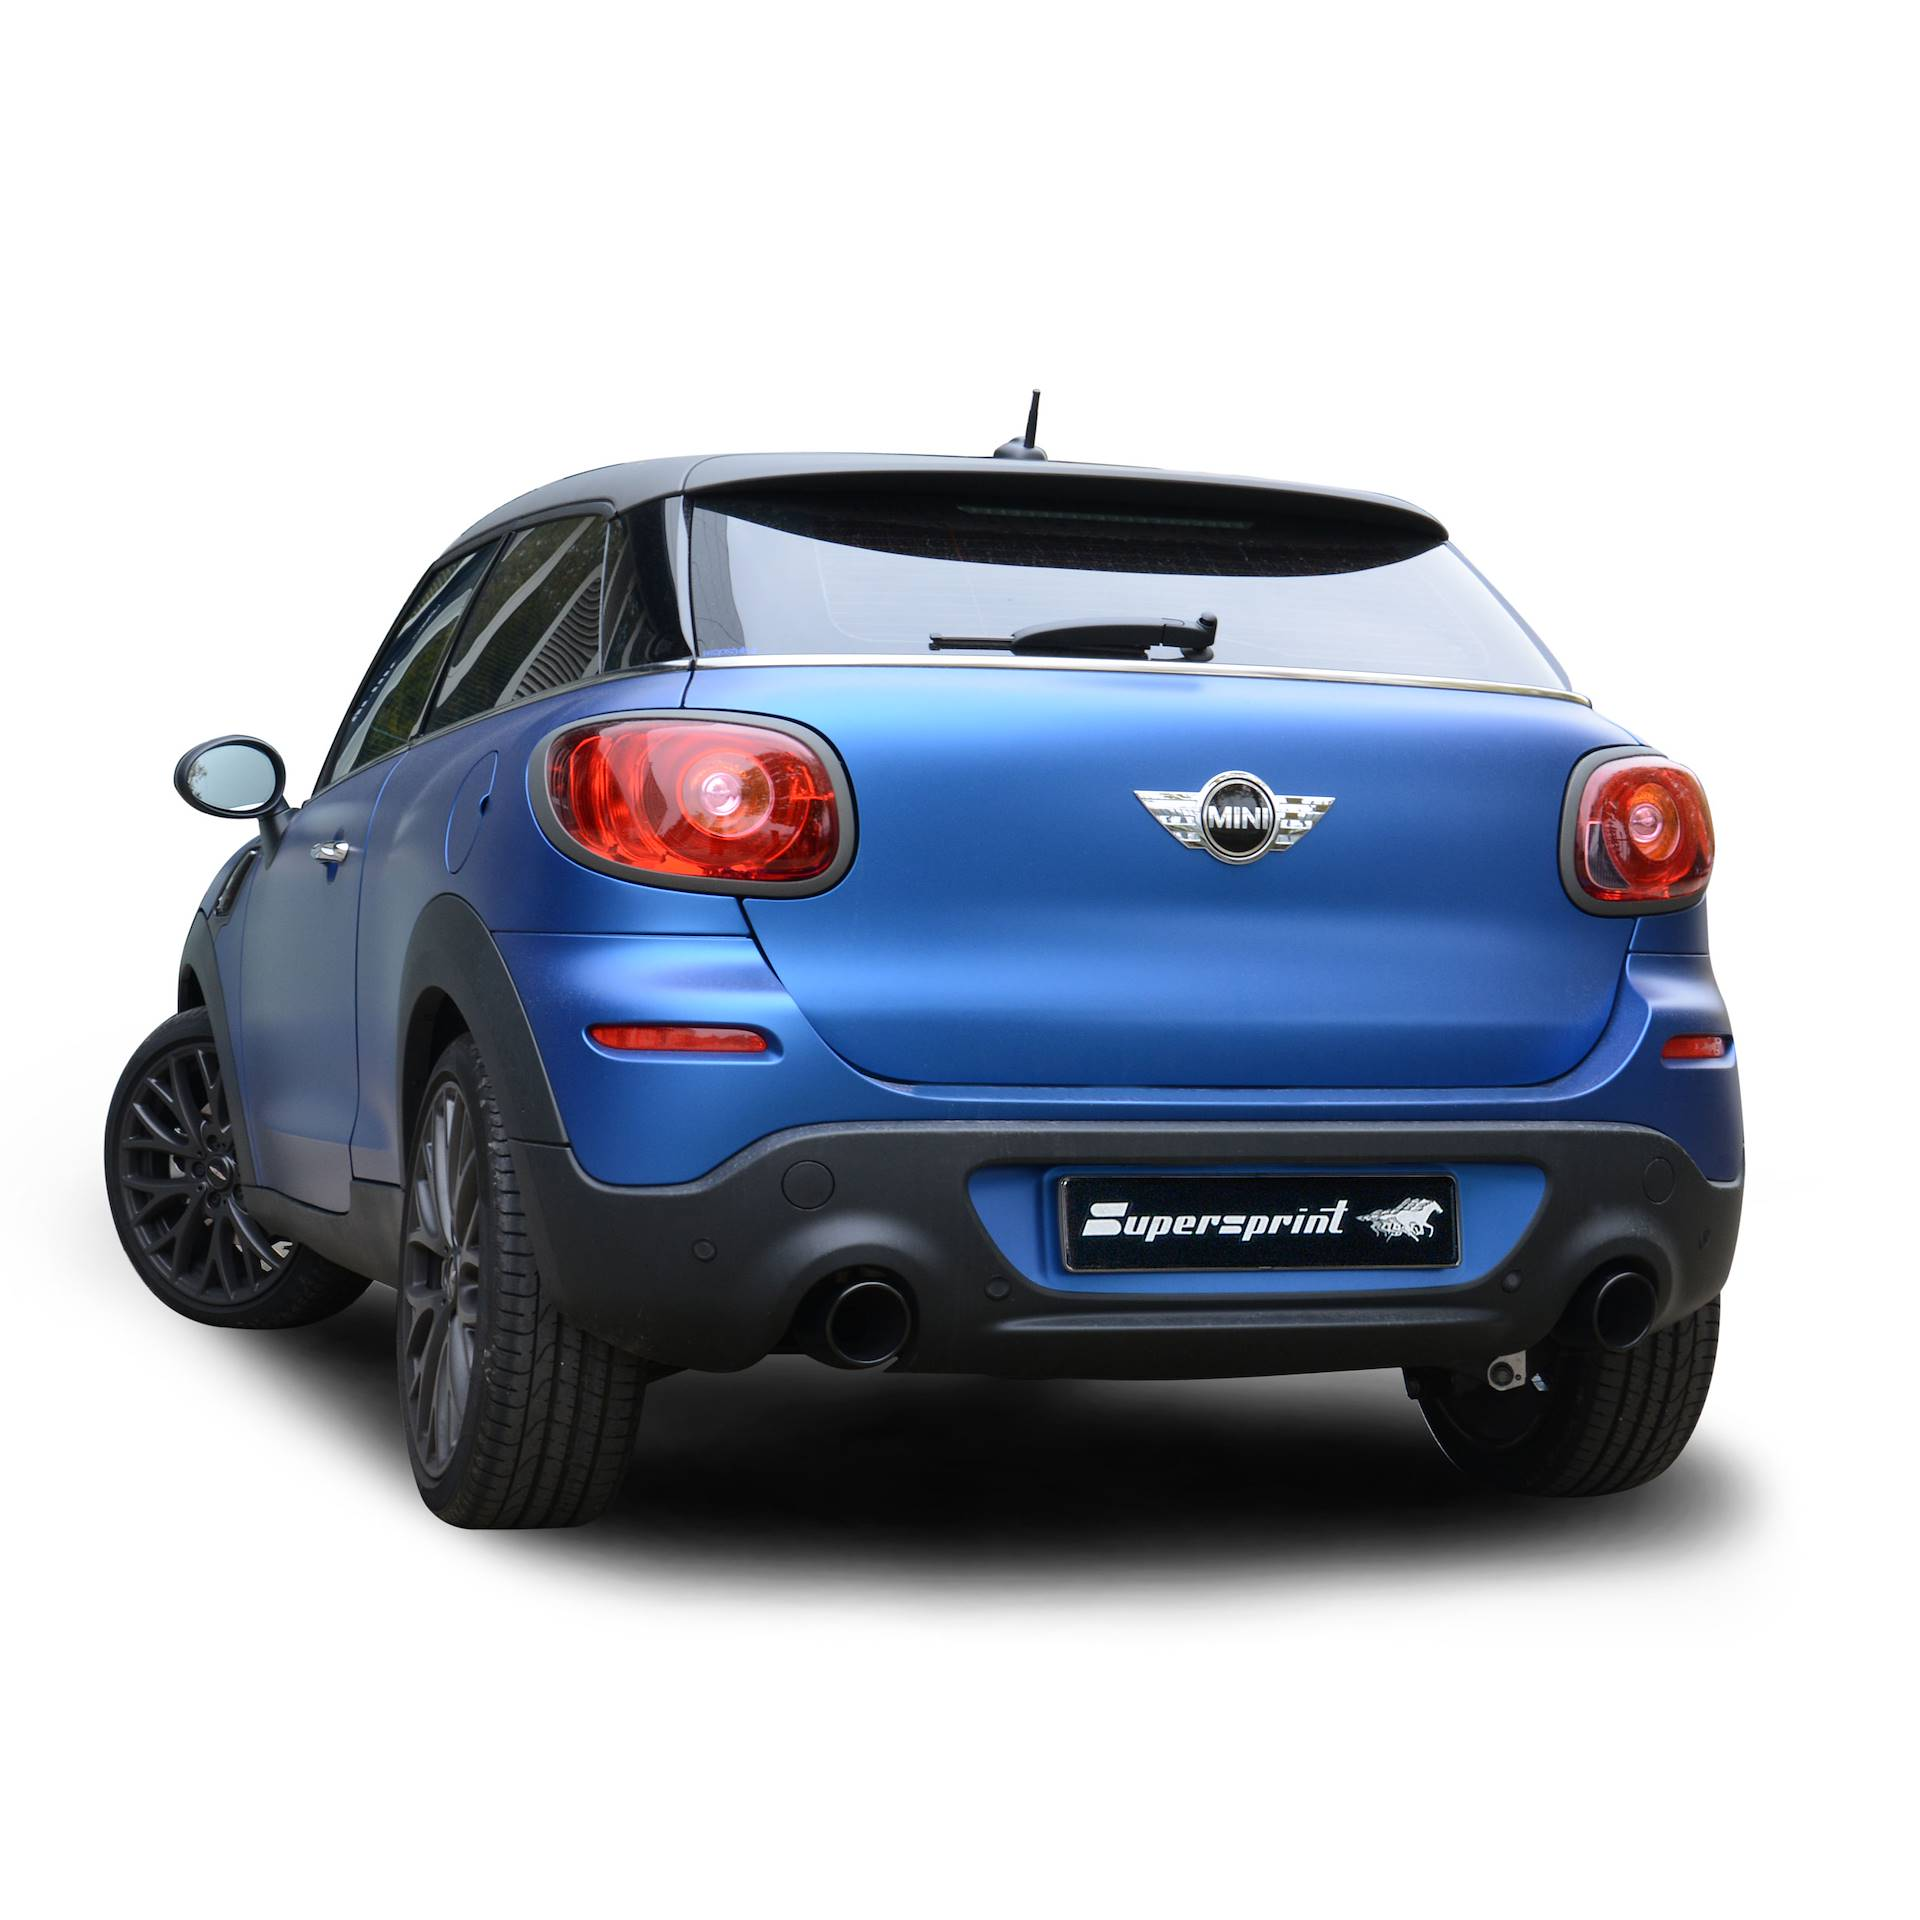 BMW MINI - BMW MINI Cooper S Paceman 1.6i Turbo 2013 ->